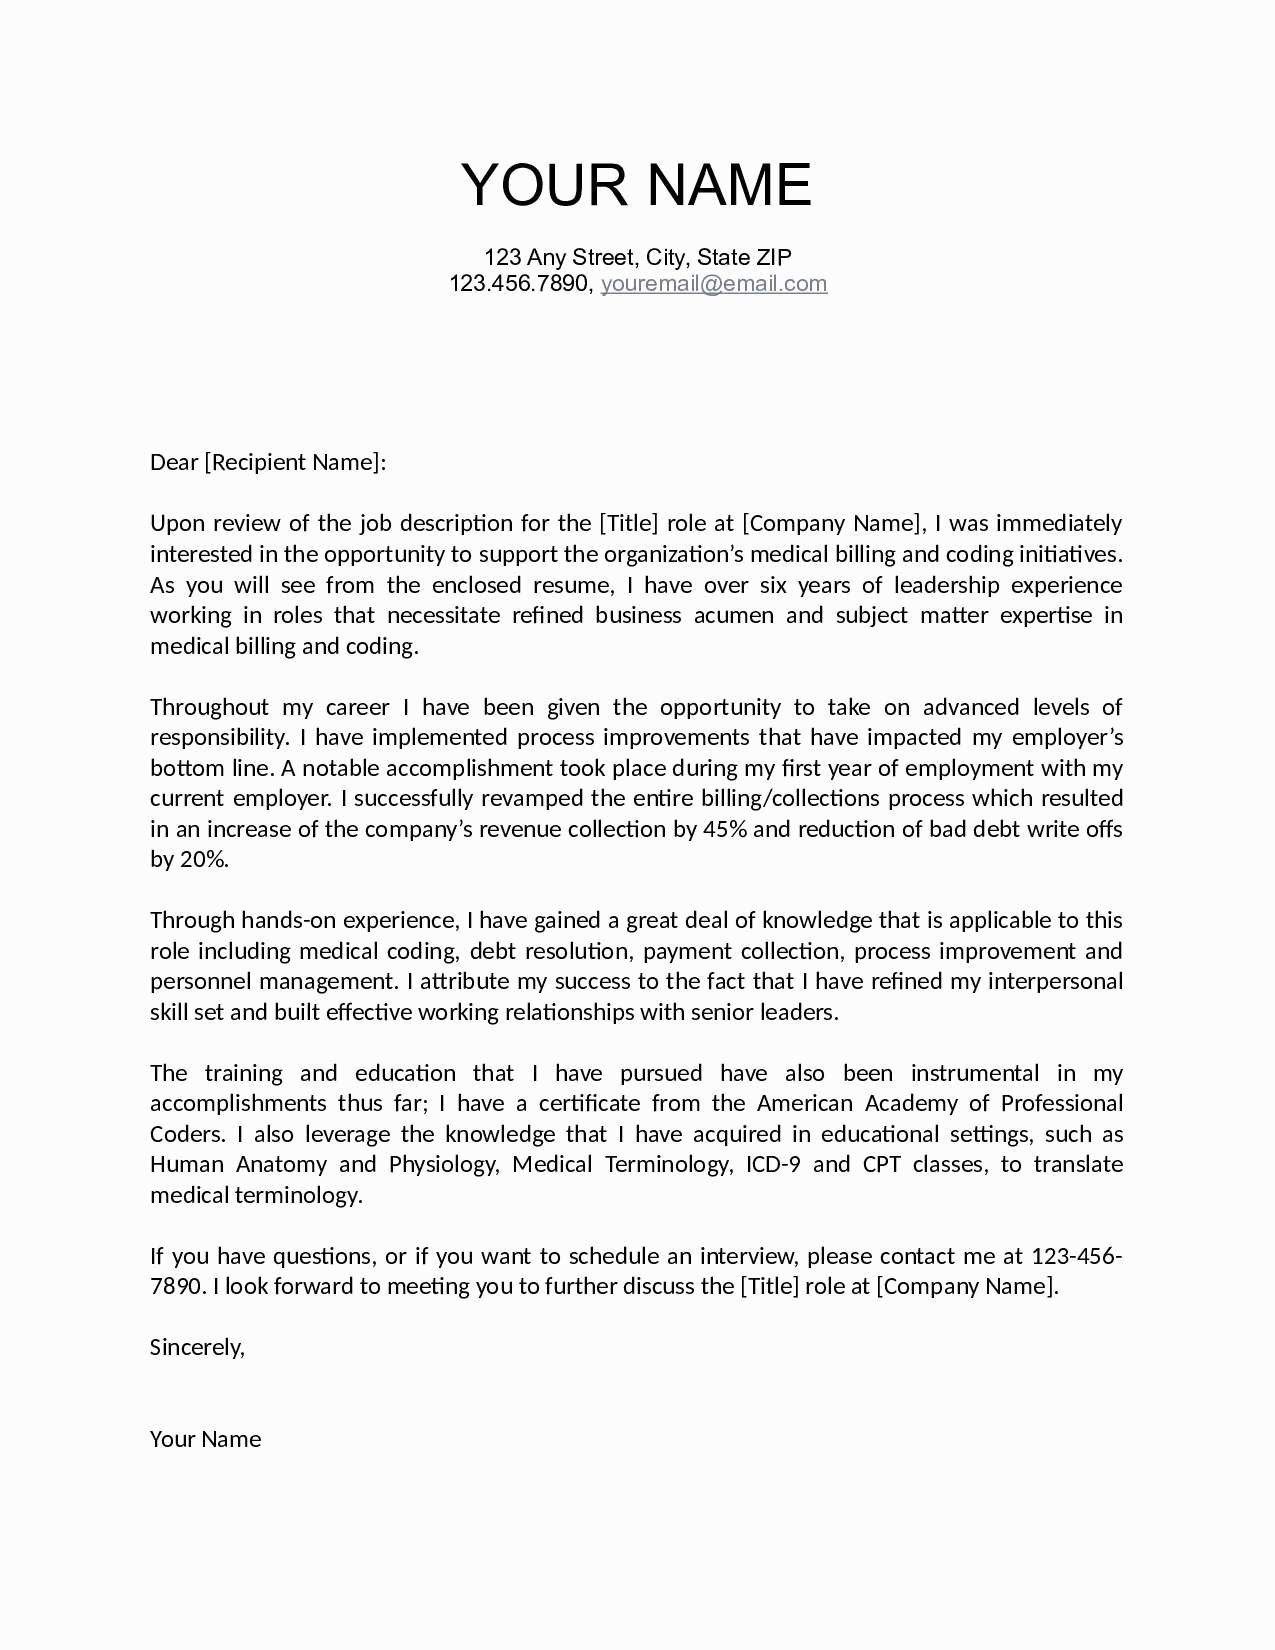 Cover Letter Template Restaurant - What to Write A Covering Letter for A Job